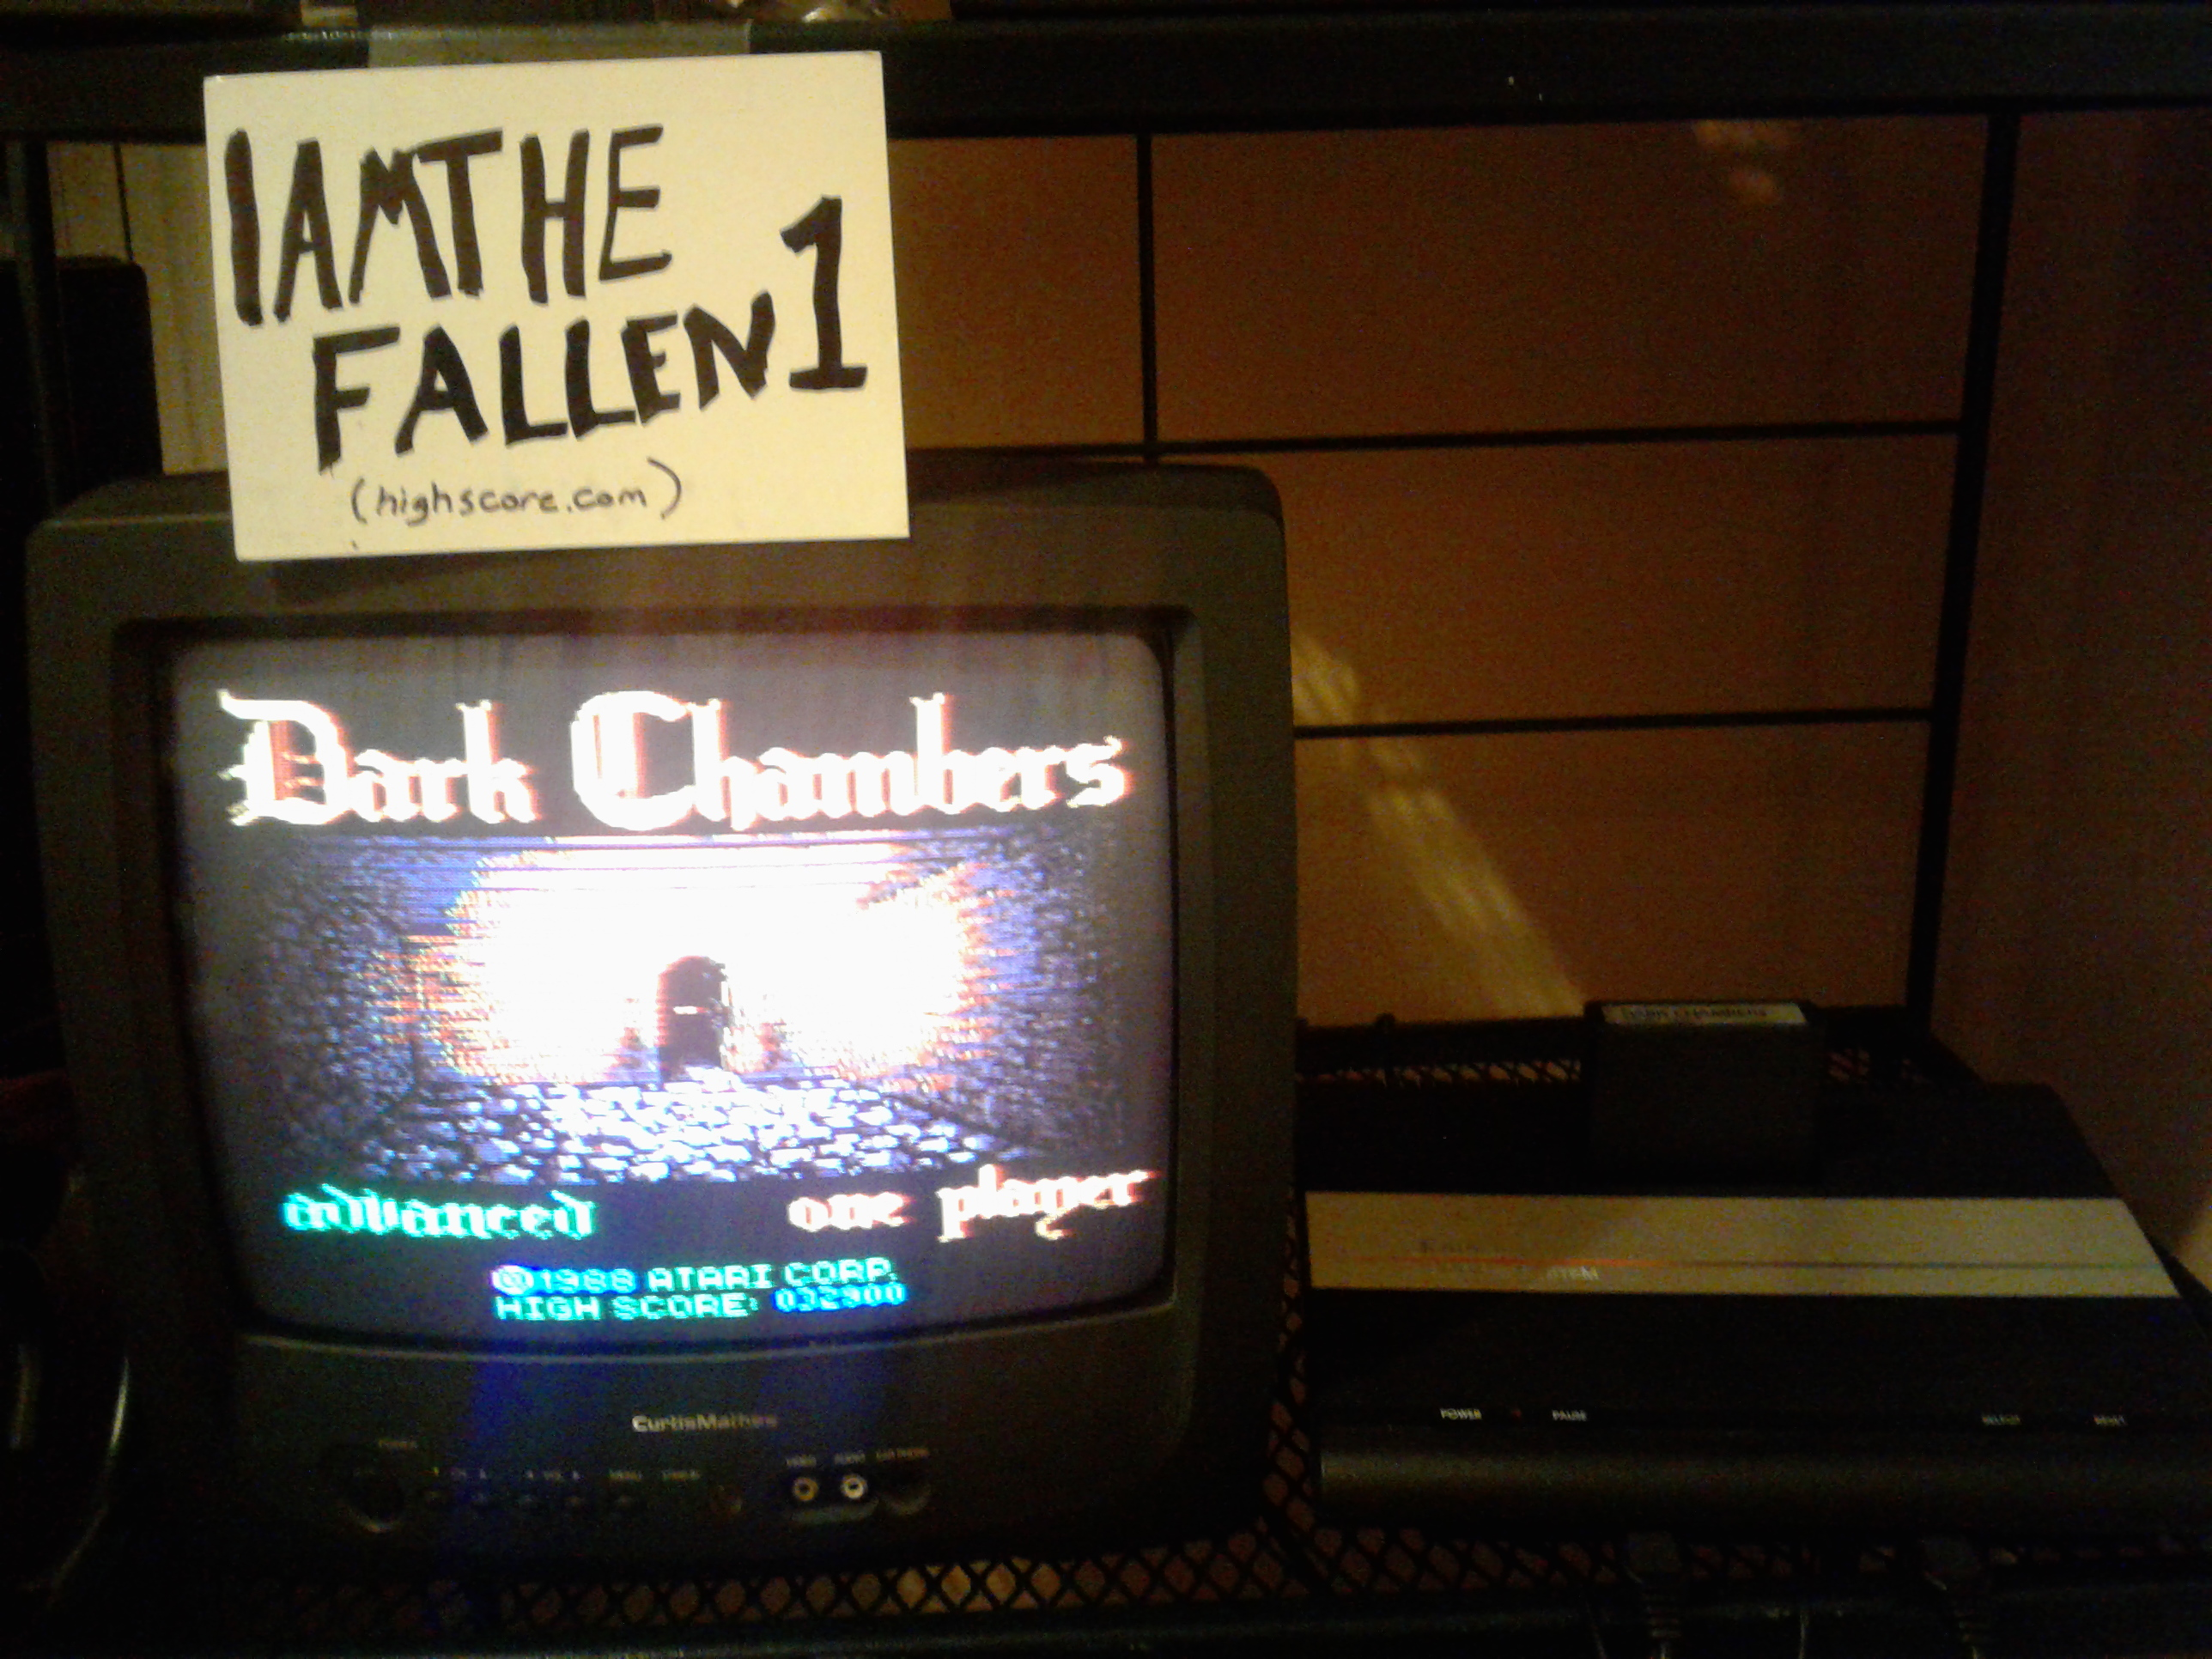 iamthefallen1: Dark Chambers: Advanced (Atari 7800) 32,900 points on 2017-08-27 22:53:13